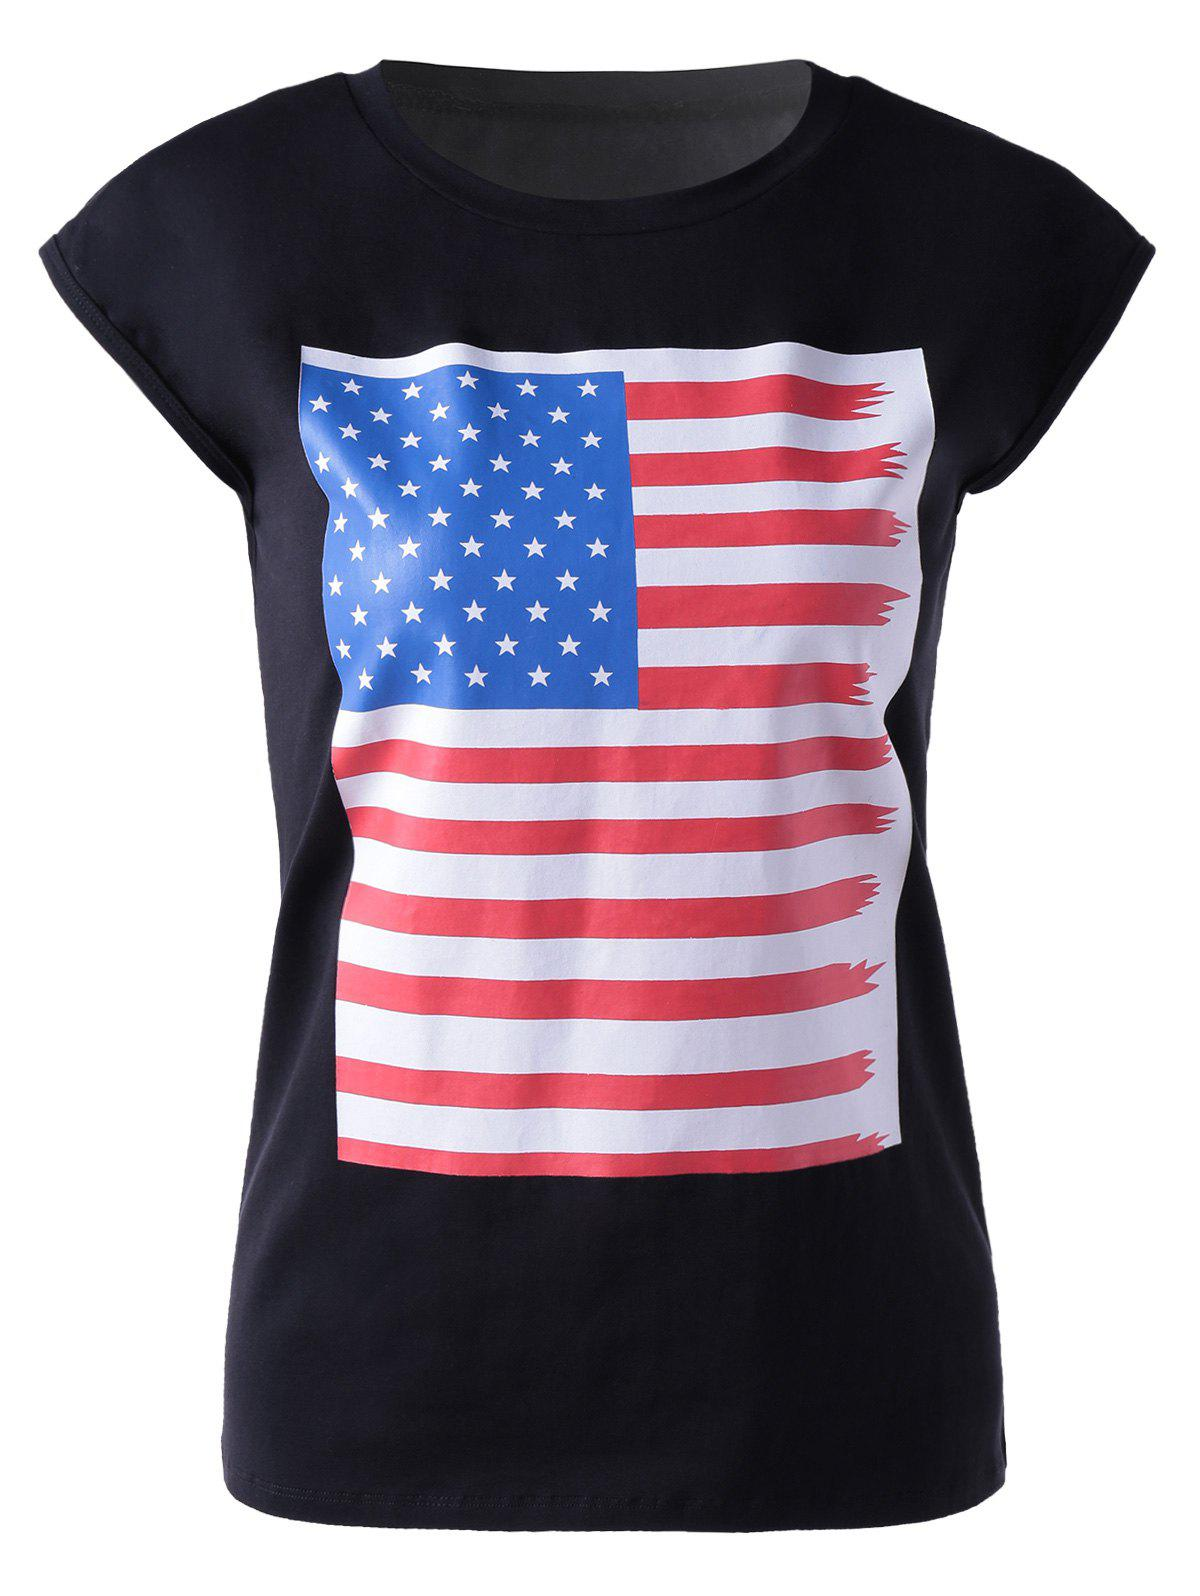 Casual Women's Round Neck Colorful Print Sleeveless T-Shirt For Women - BLACK L